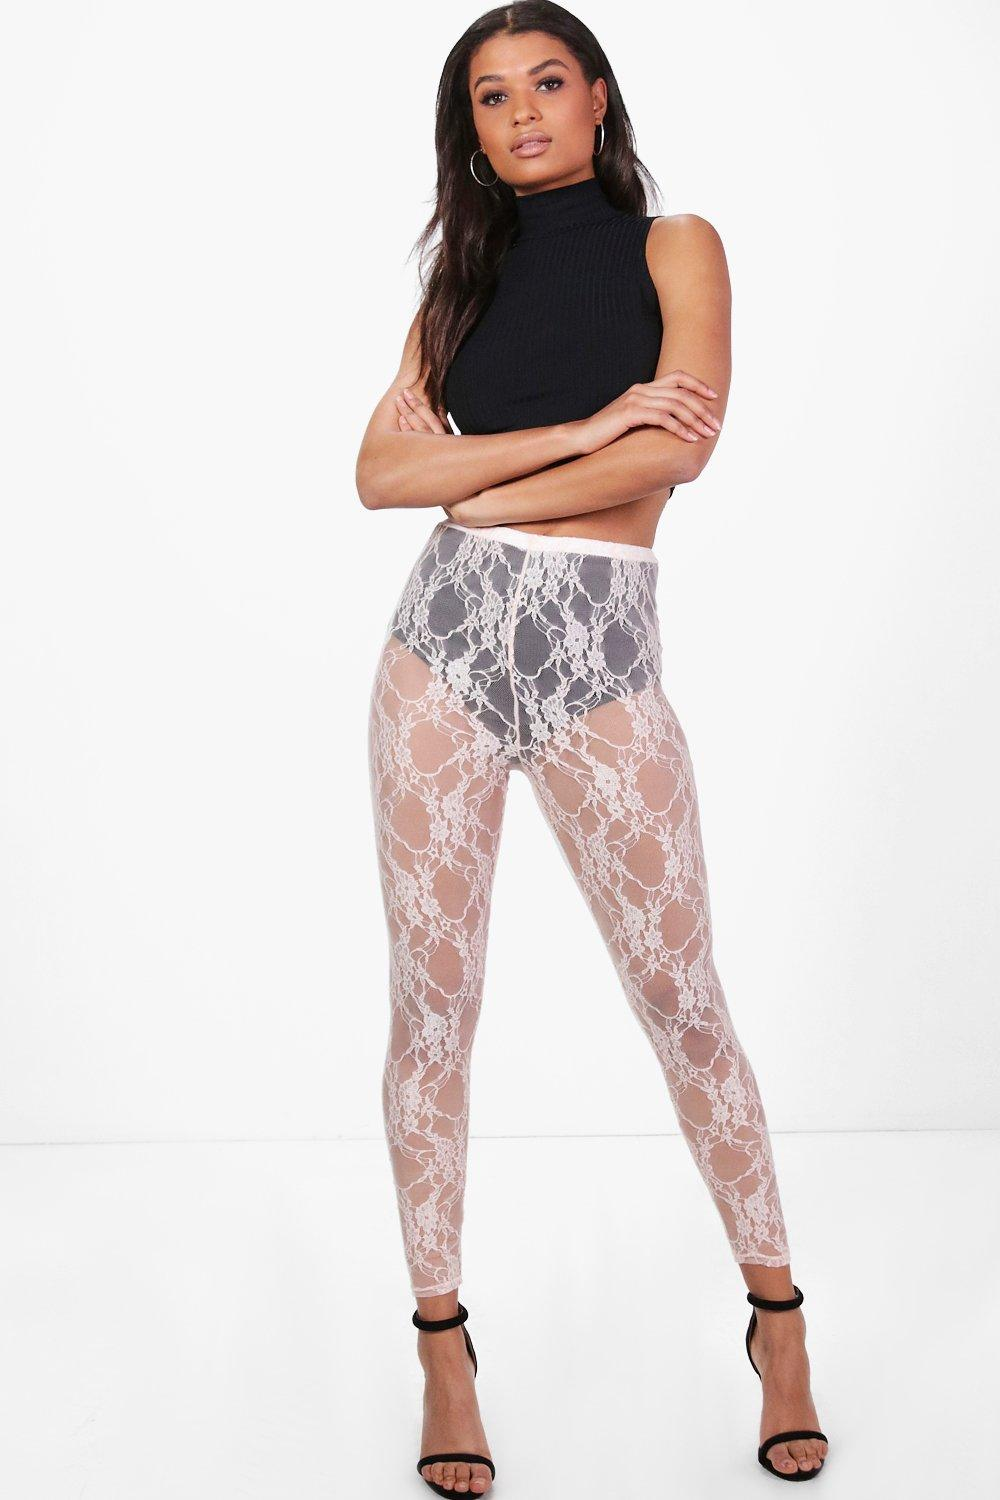 Adara Lace Full Length Leggings nude